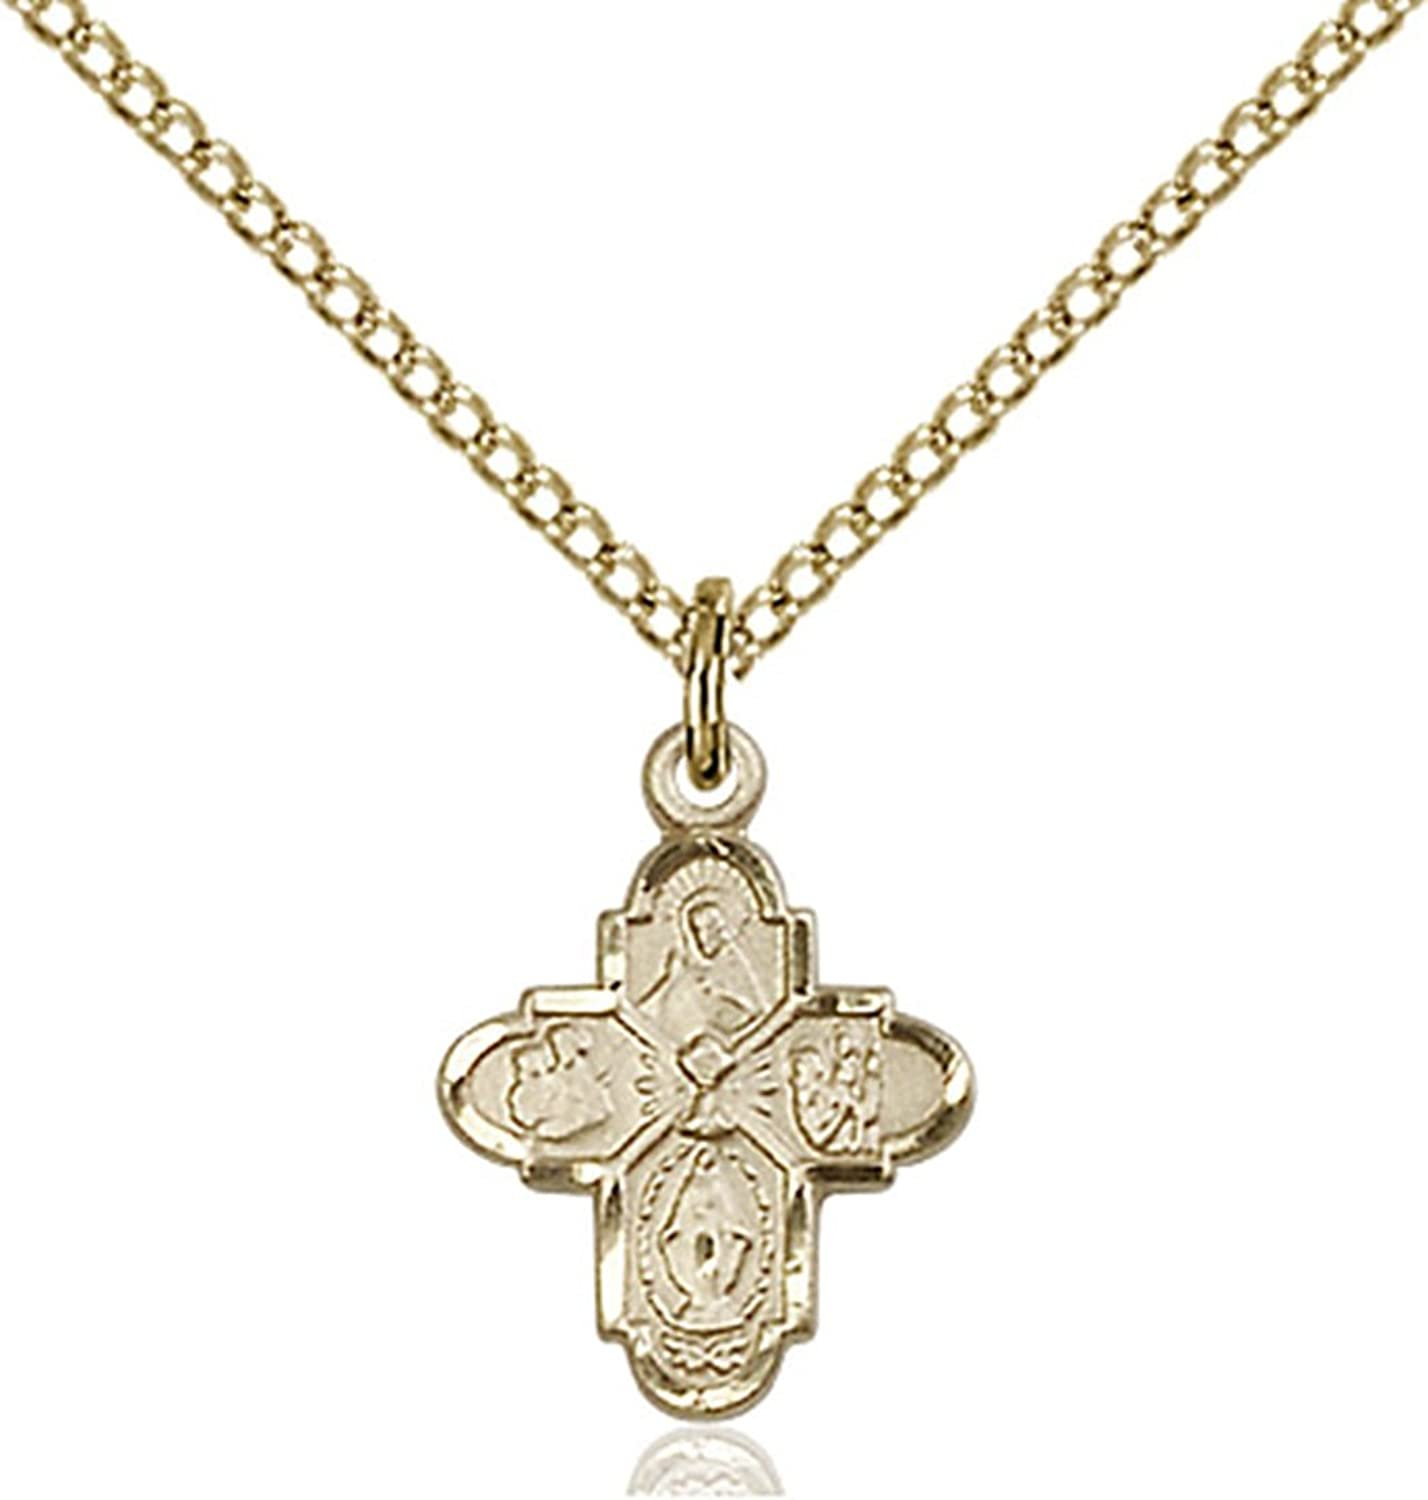 14K Gold Filled First Communion 4-Way Medal with Chalice Center, 1/2 Inch